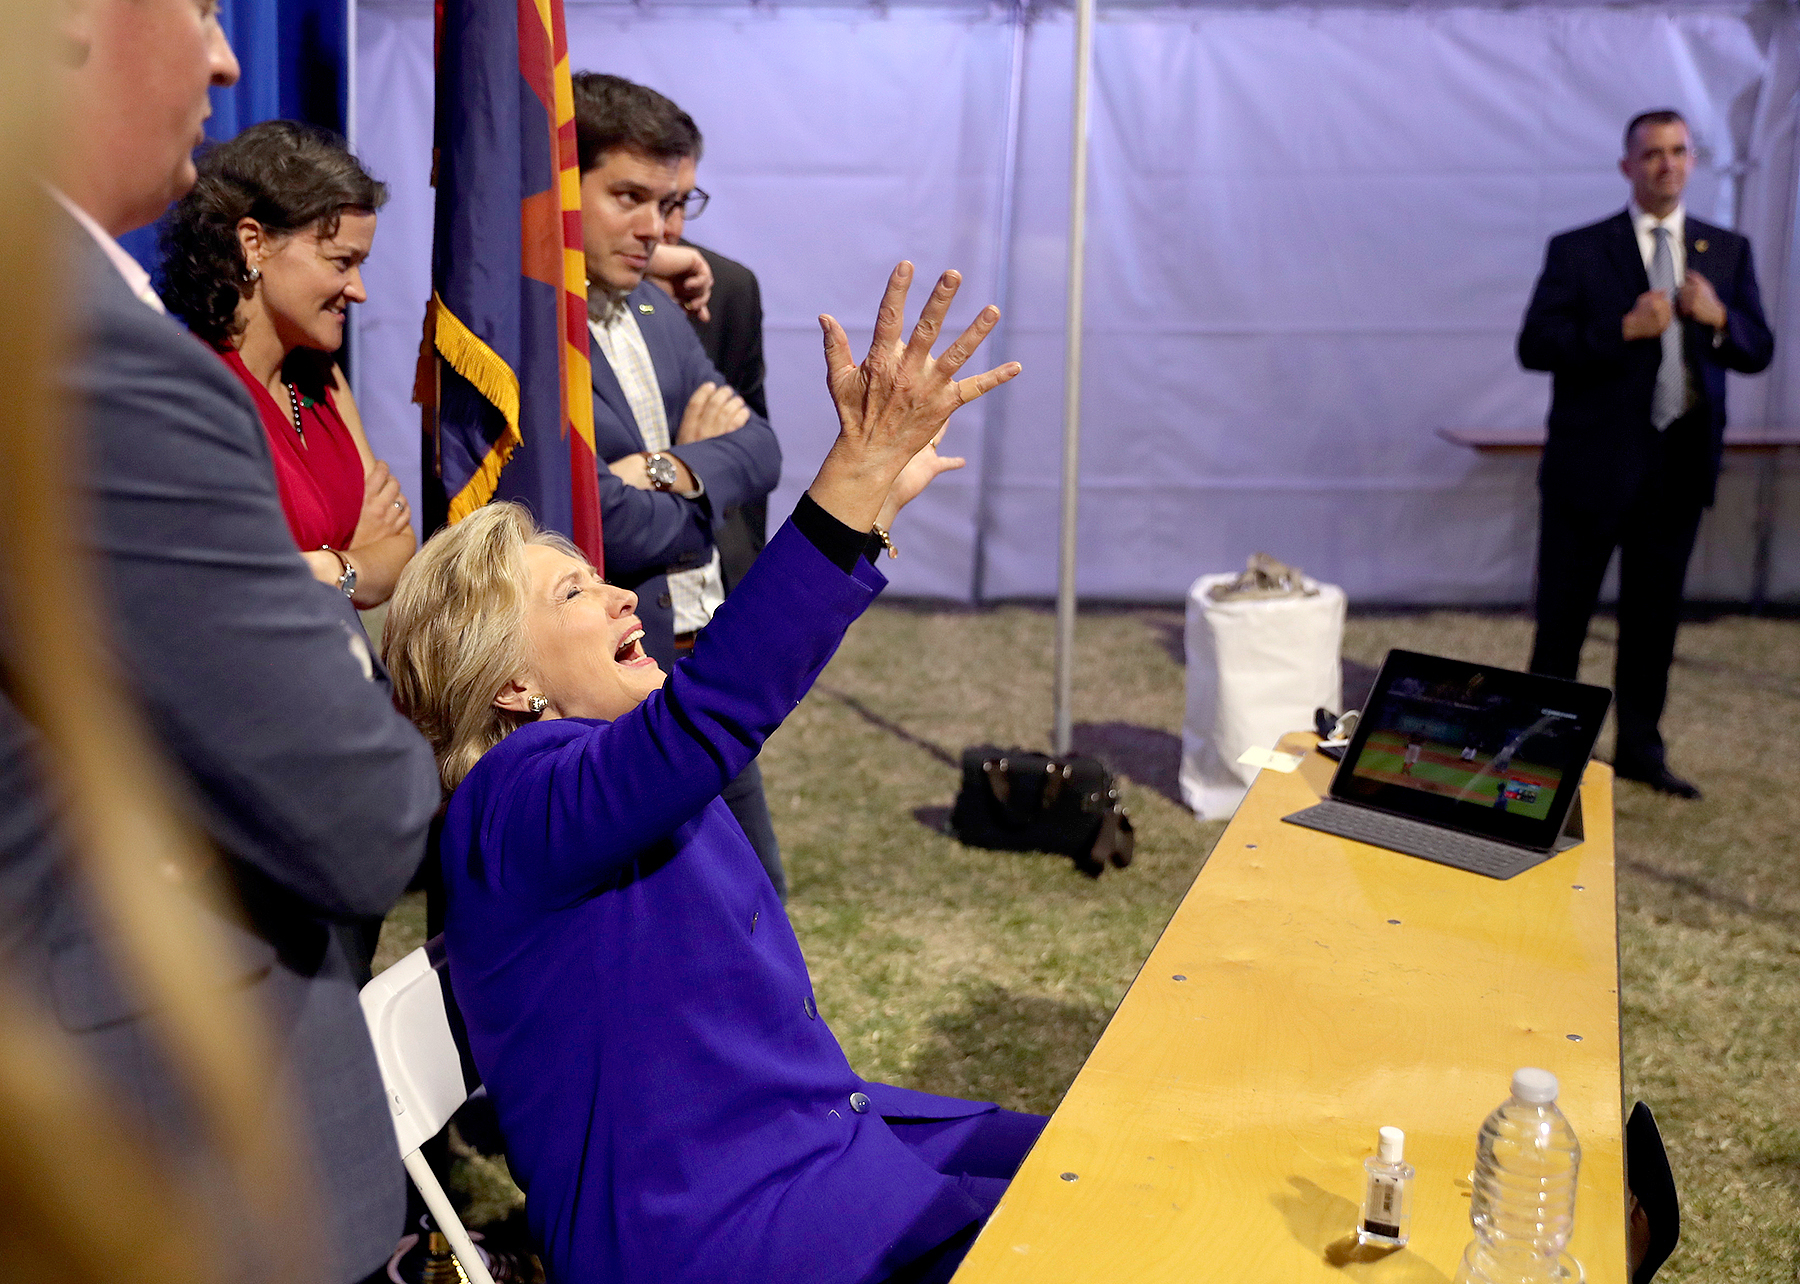 Democratic presidential candidate Hillary Clinton watches the World Series baseball game between the Chicago Cub and the Cleveland Indians after her final campaign rally of the day at Arizona State University in Tempe, Ariz., Wednesday, Nov. 2, 2016.